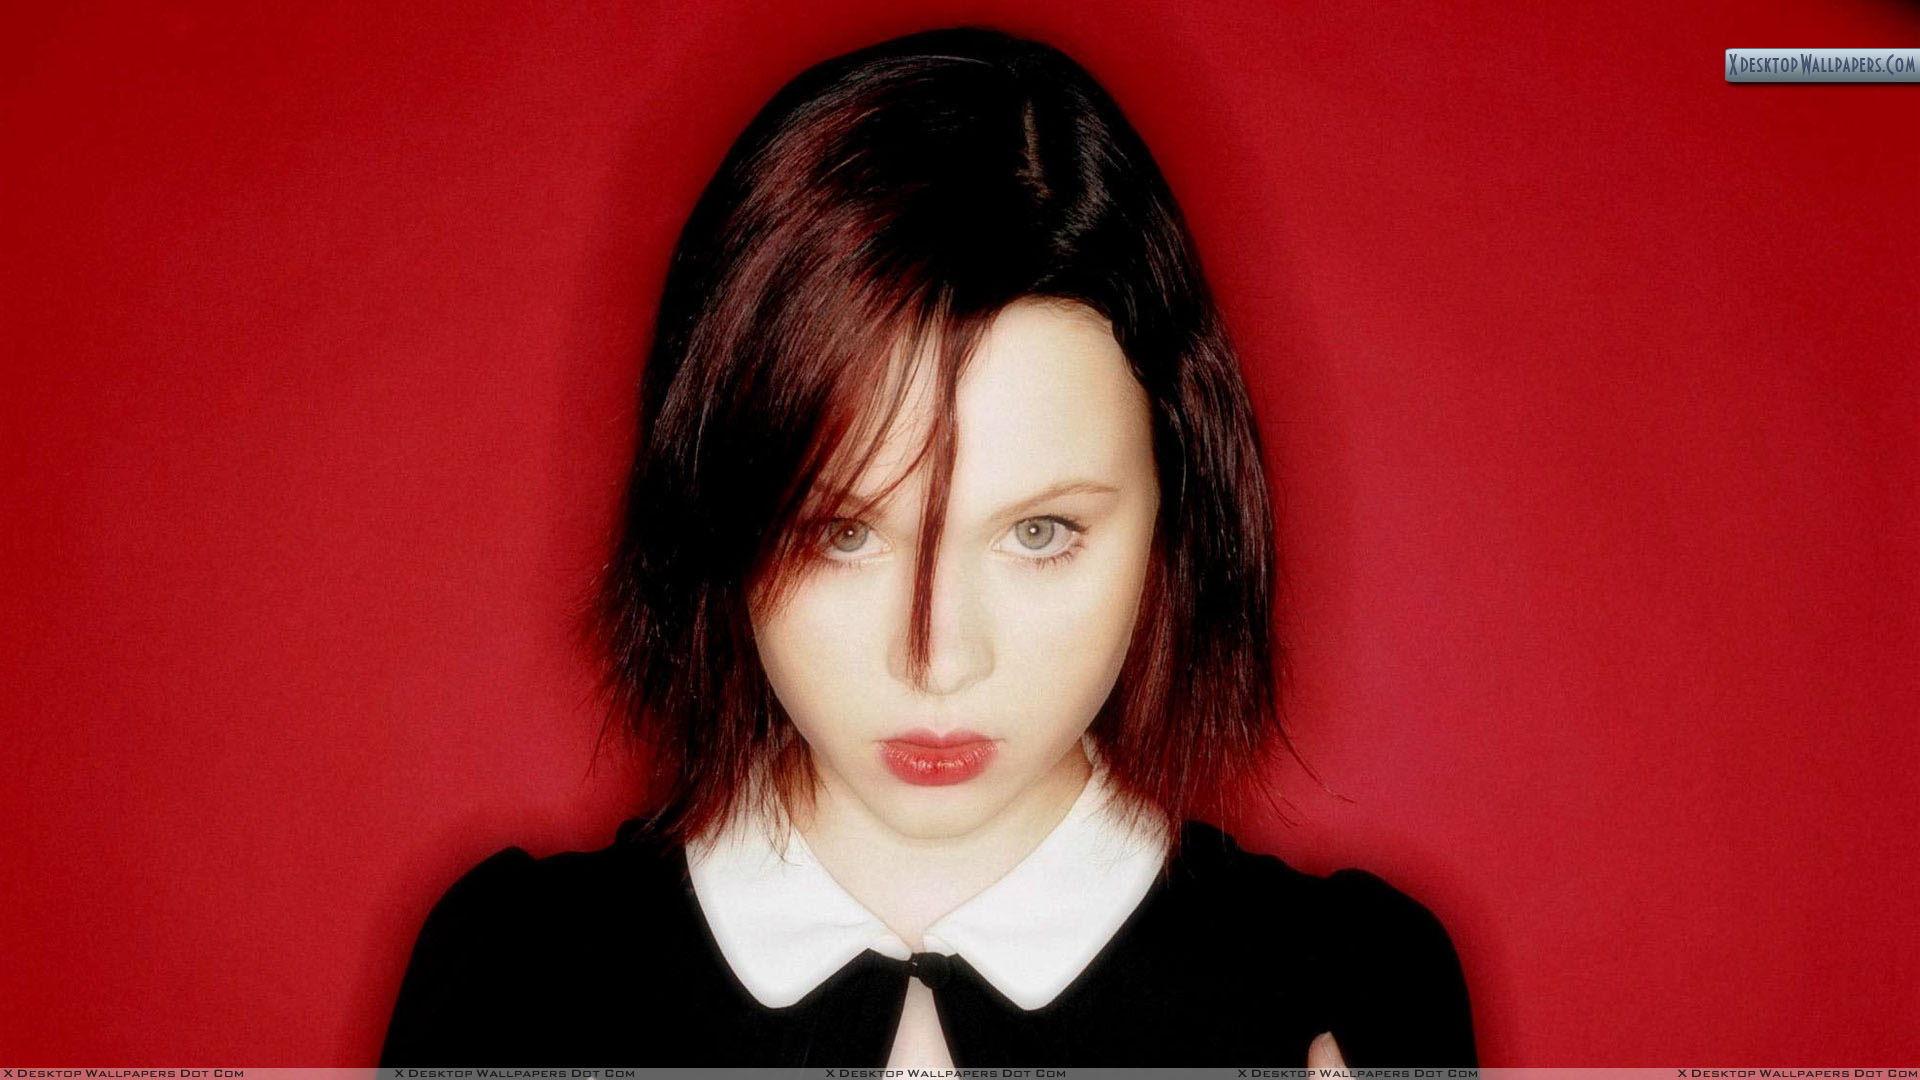 Thora Birch Looking Front Red Lips And Background 978